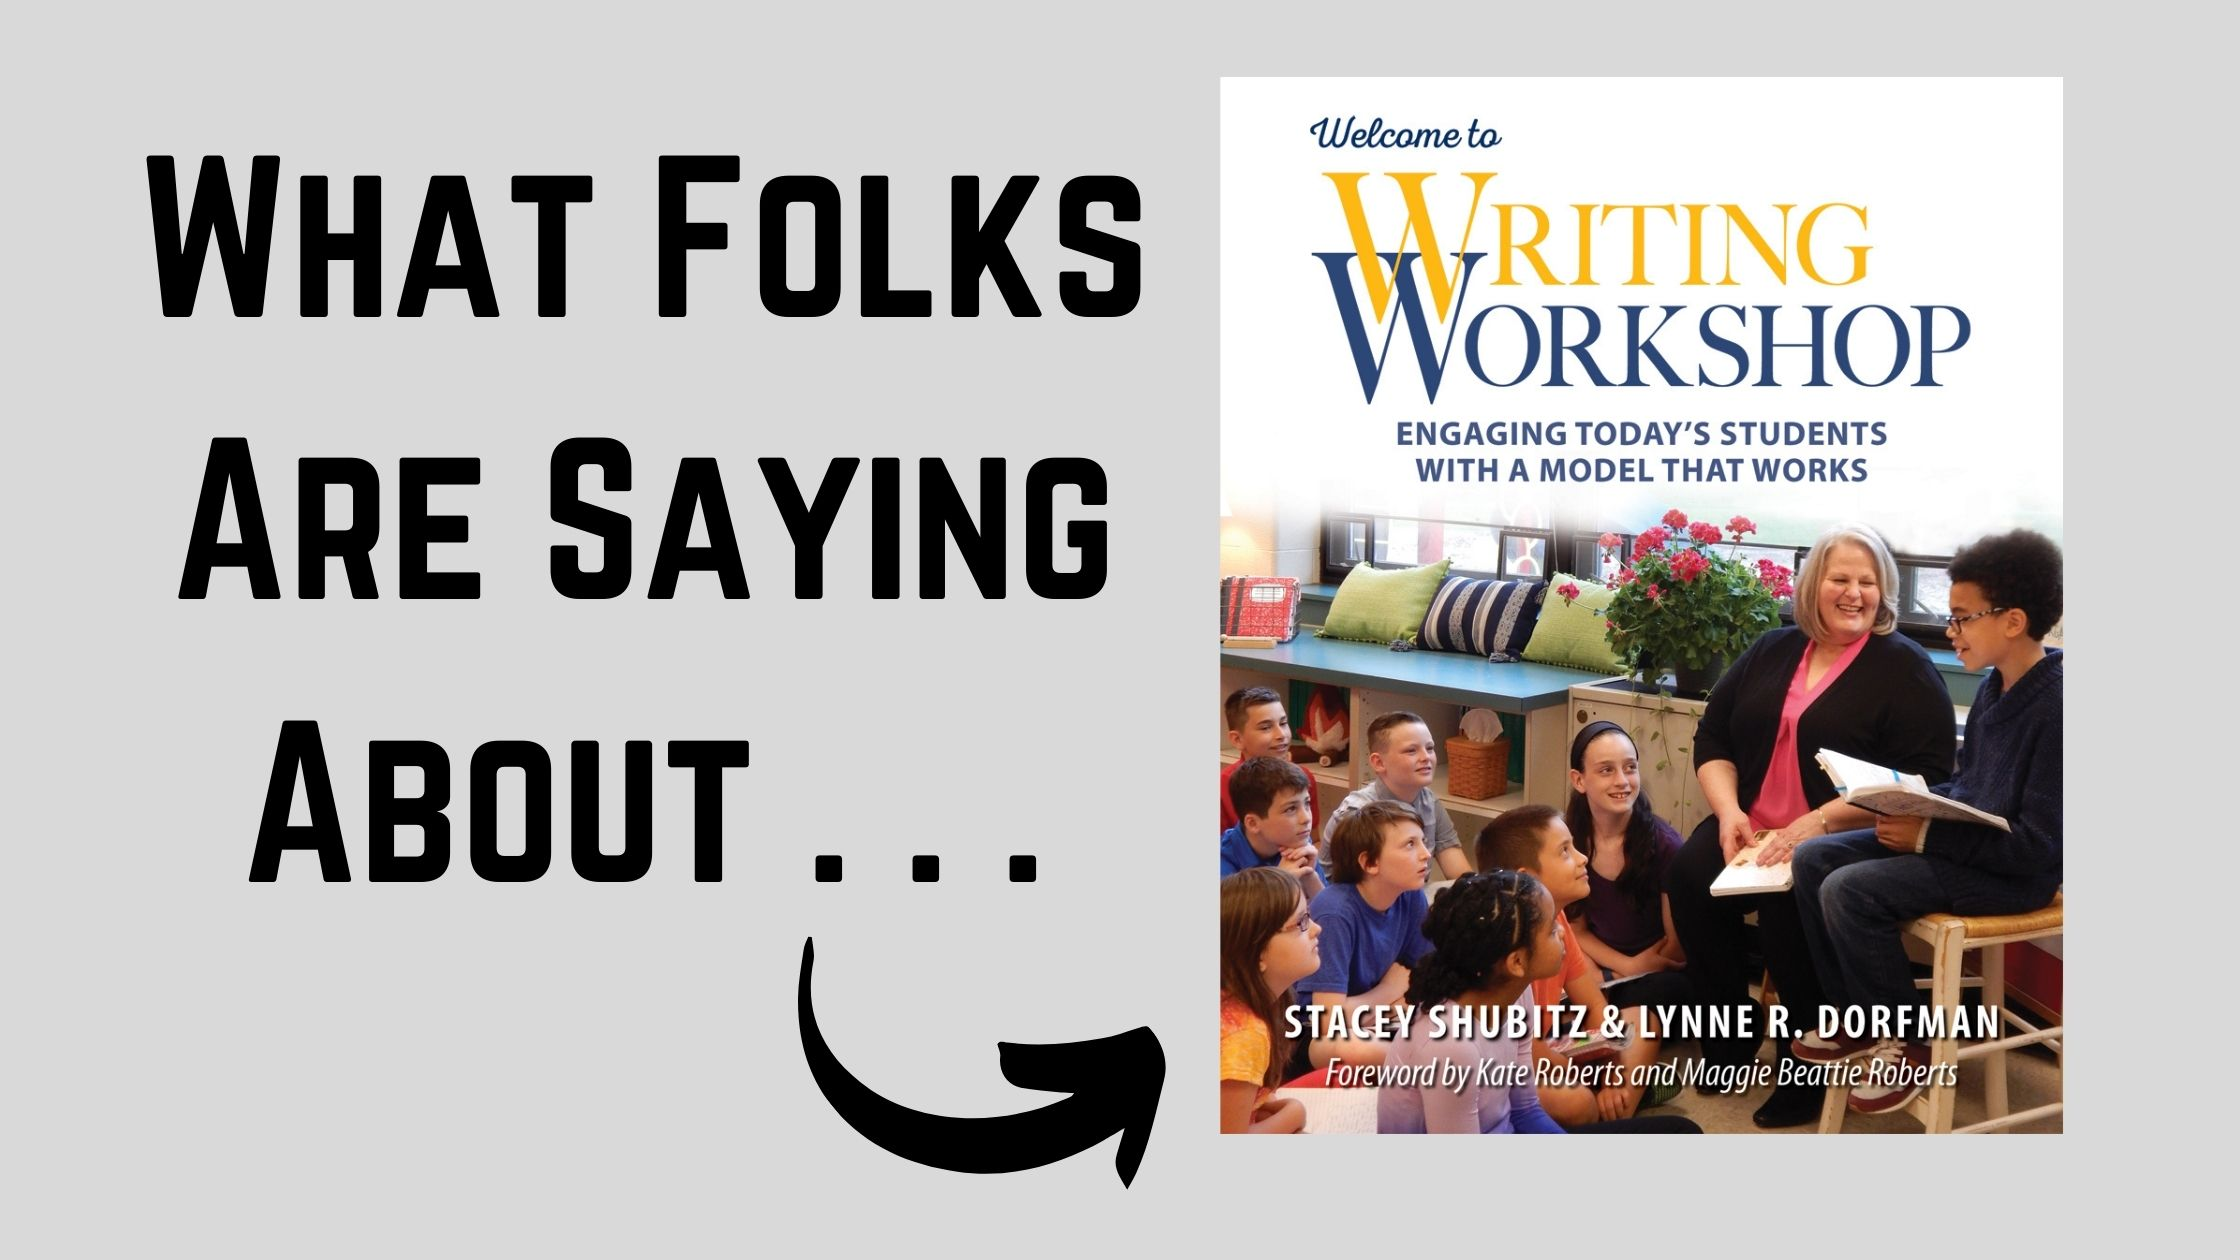 What Folks Are Saying About: Welcome to Writing Workshop